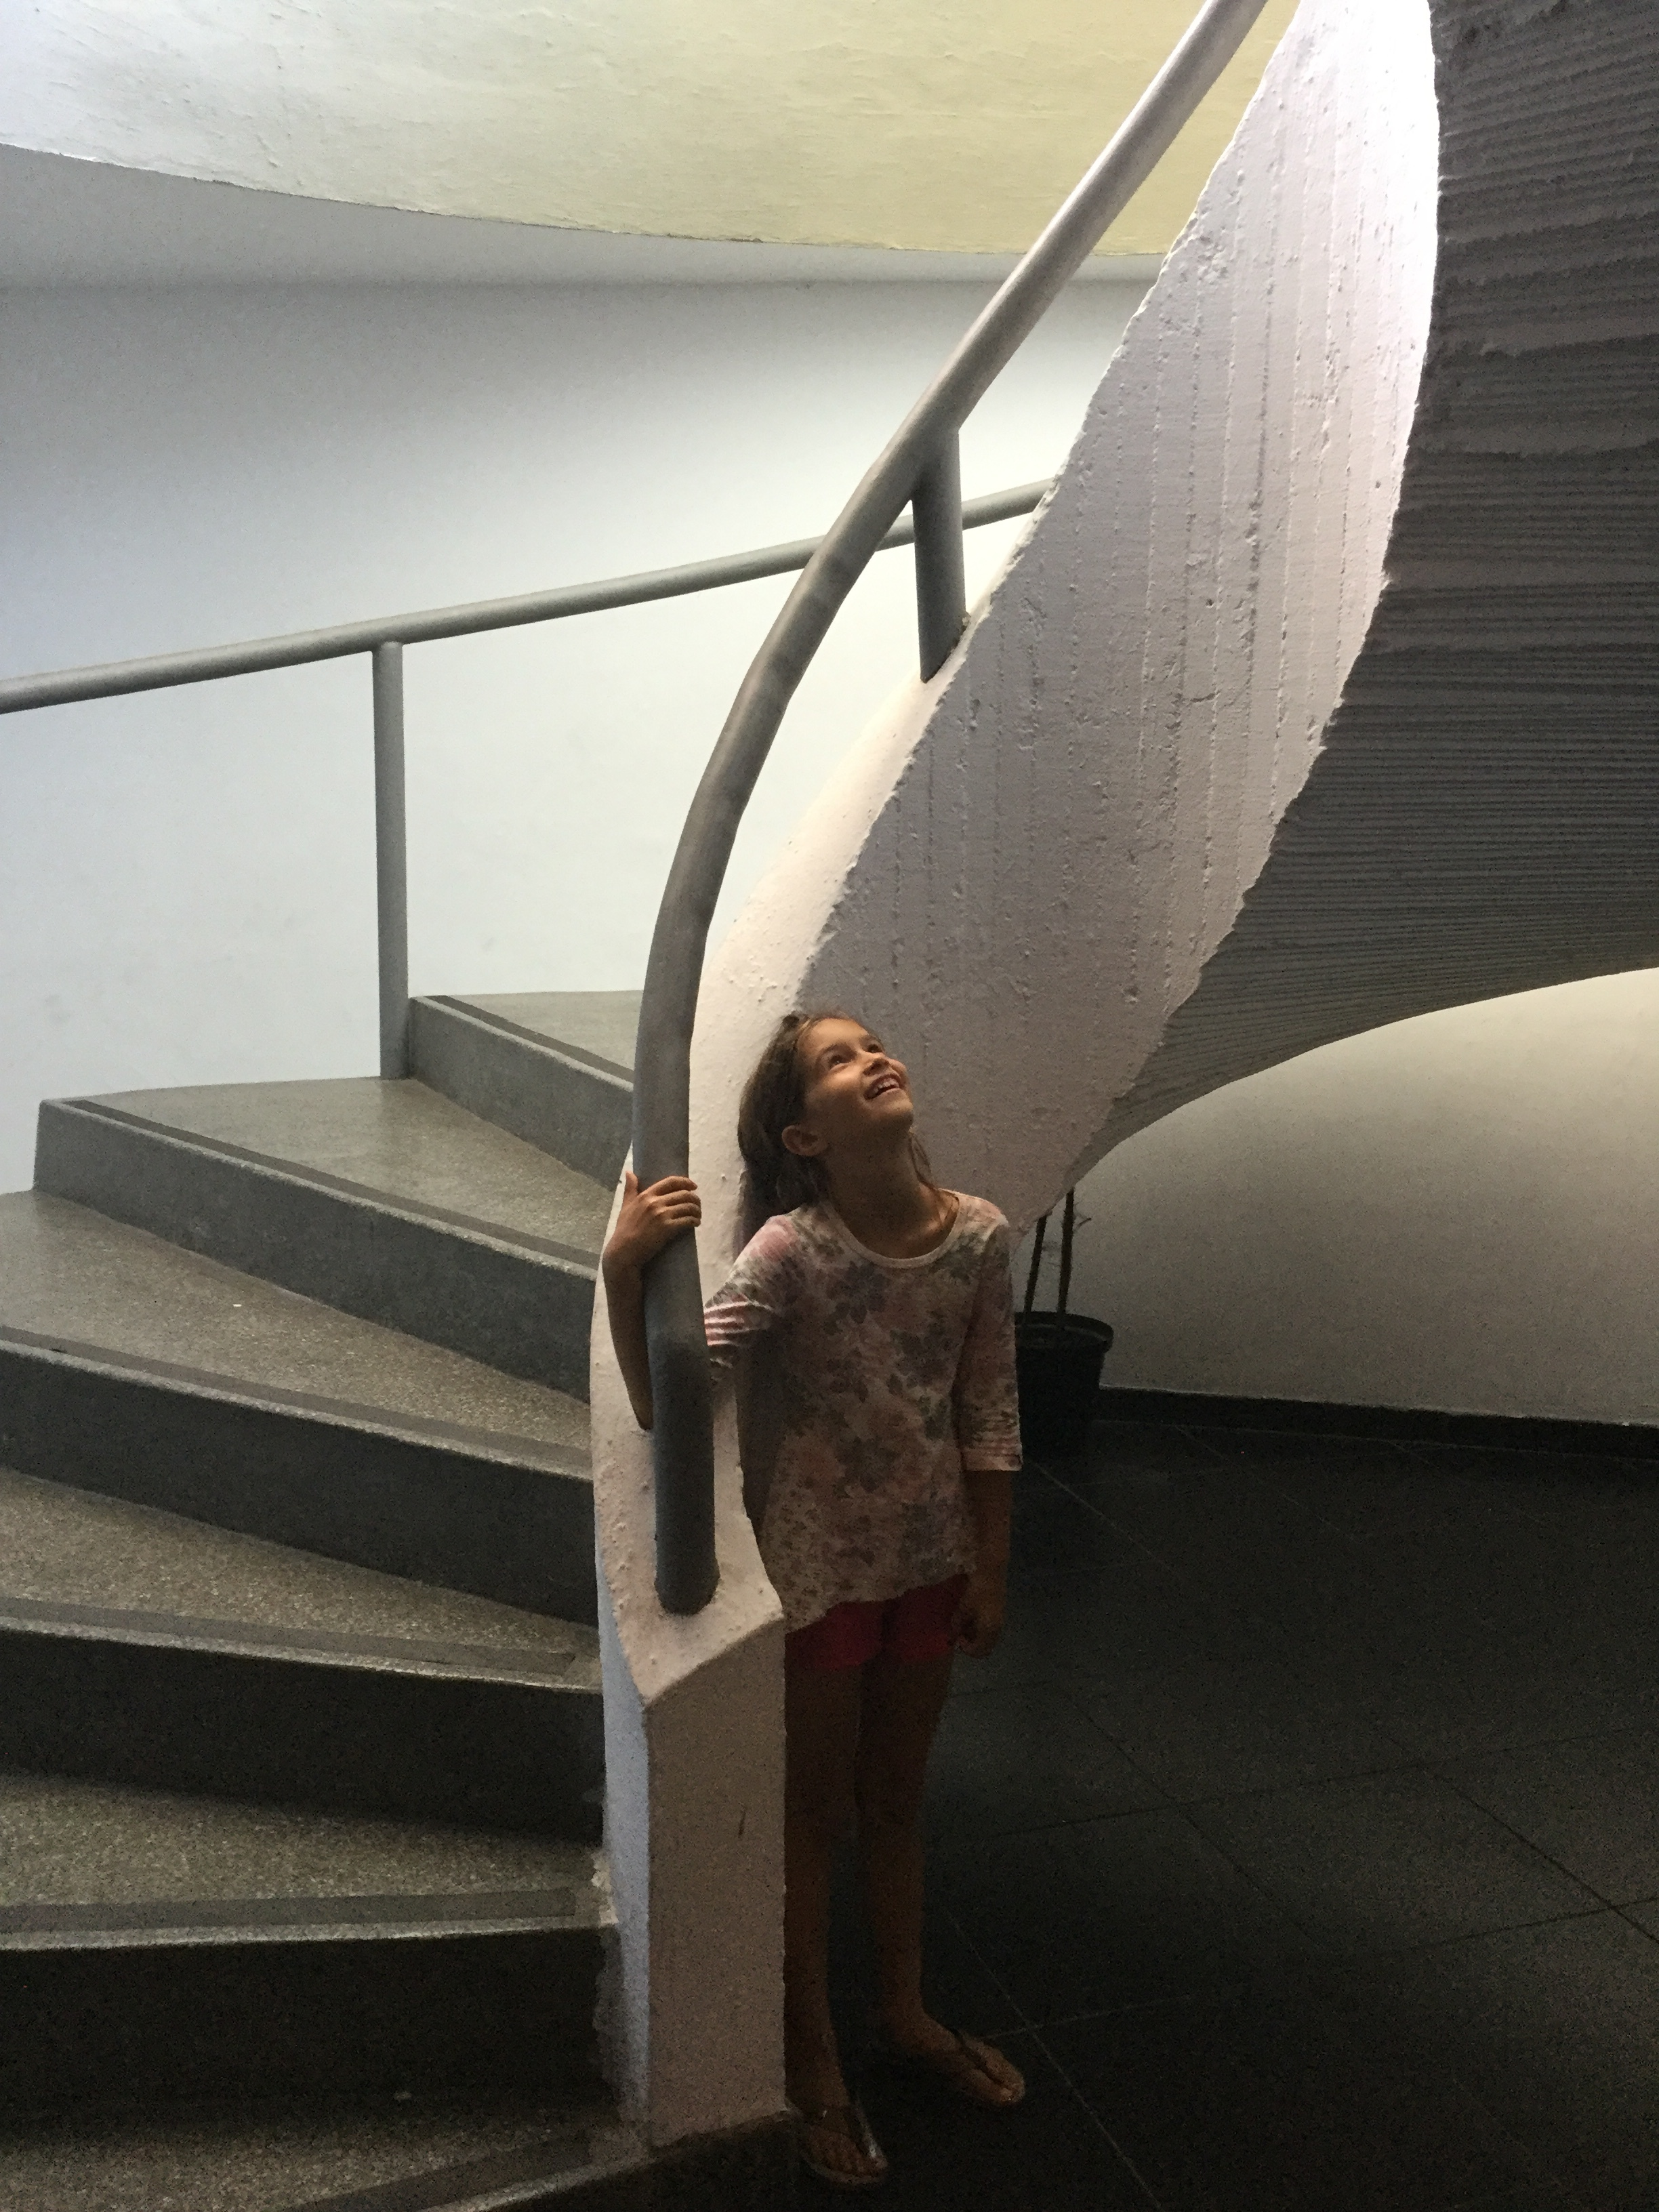 Lili at a Niemeyer staircase.